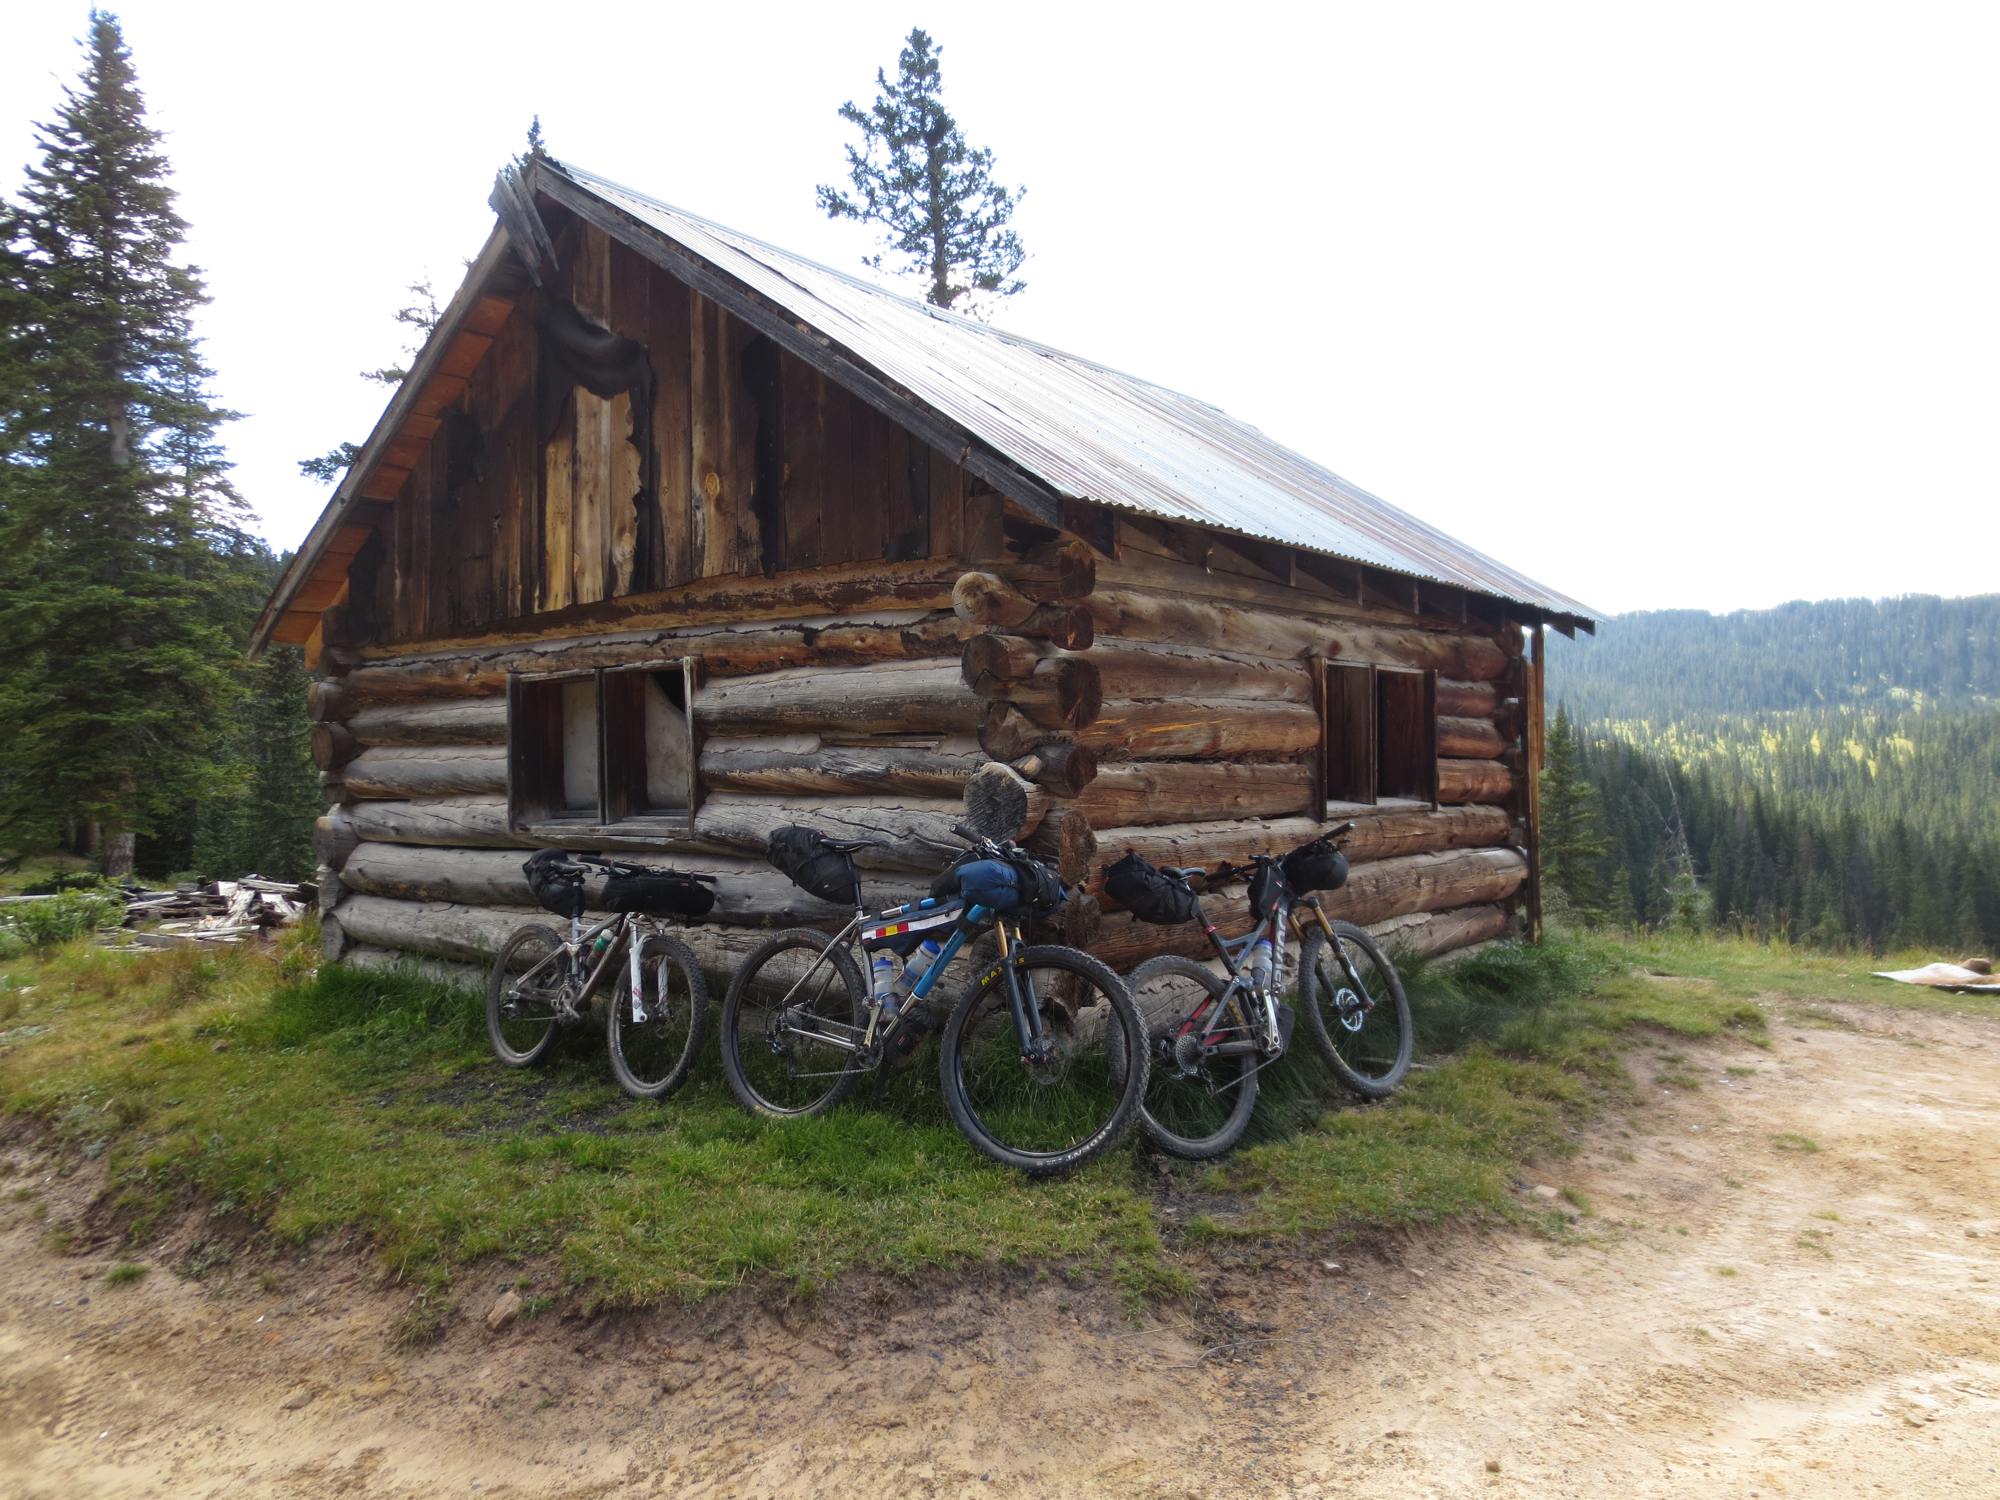 We made the cabin near the top in quite good time.  We ran into customer Bob G., who was returning from a multi-day trip of his own on his new Salsa El Mariachi Ti. He has good taste in bikes!